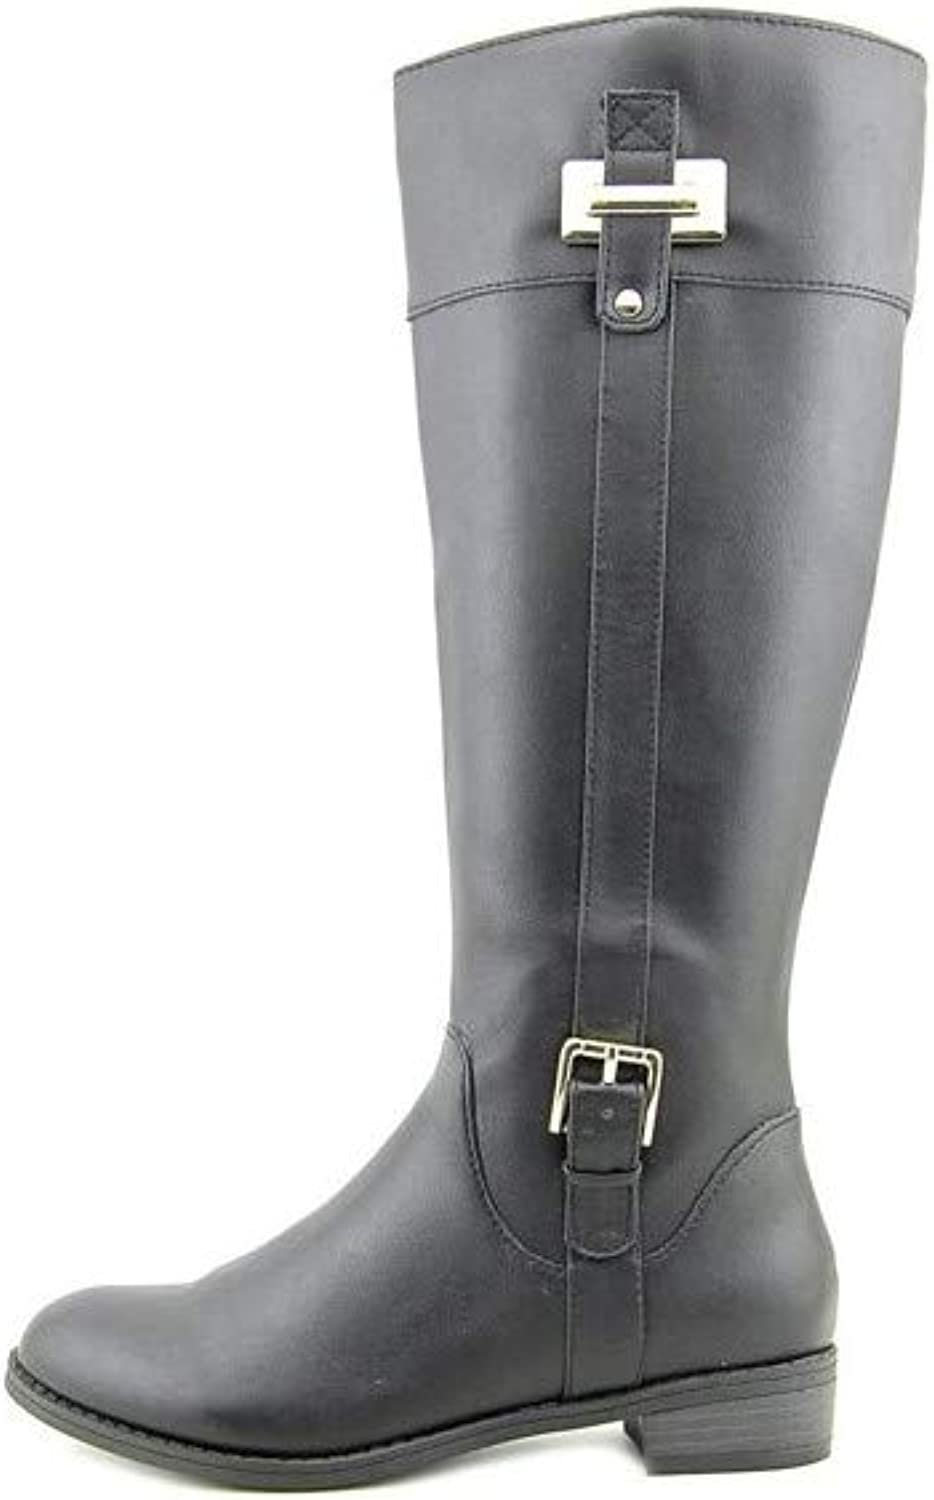 Karen Scott Womens Deliee Closed Toe Knee High Fashion Boots